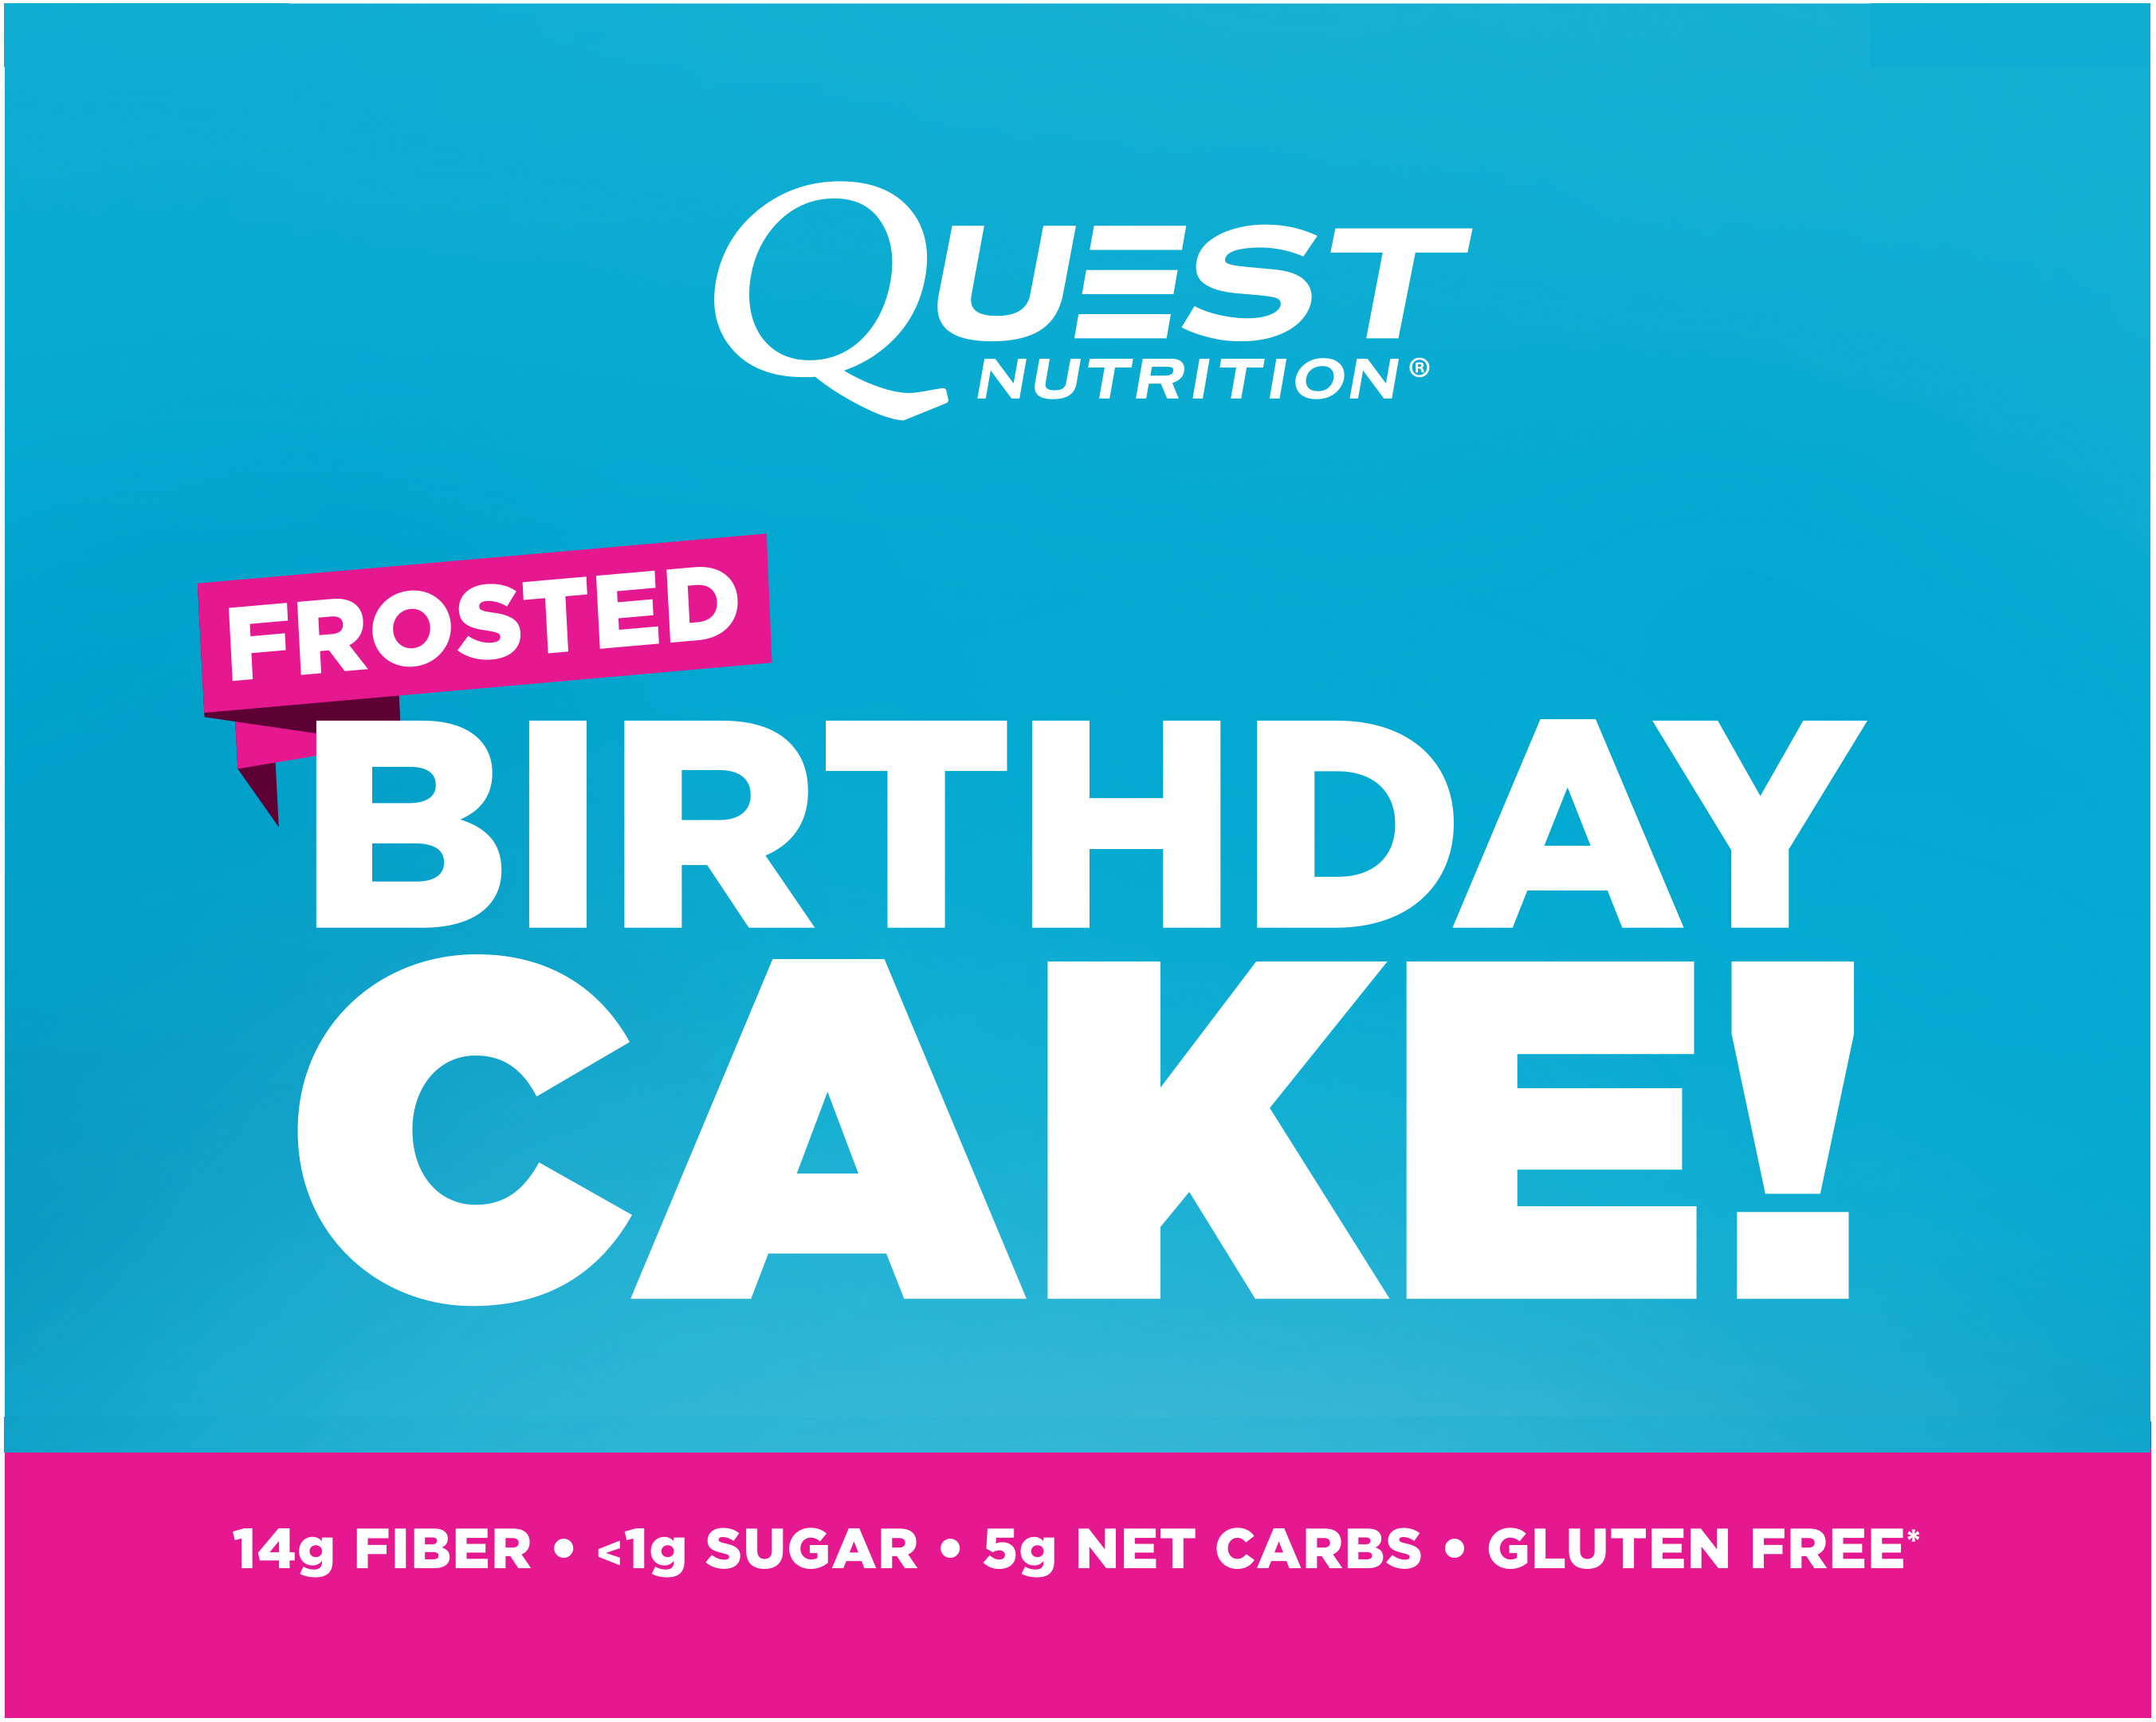 Quest Birthday Cake Nutrition